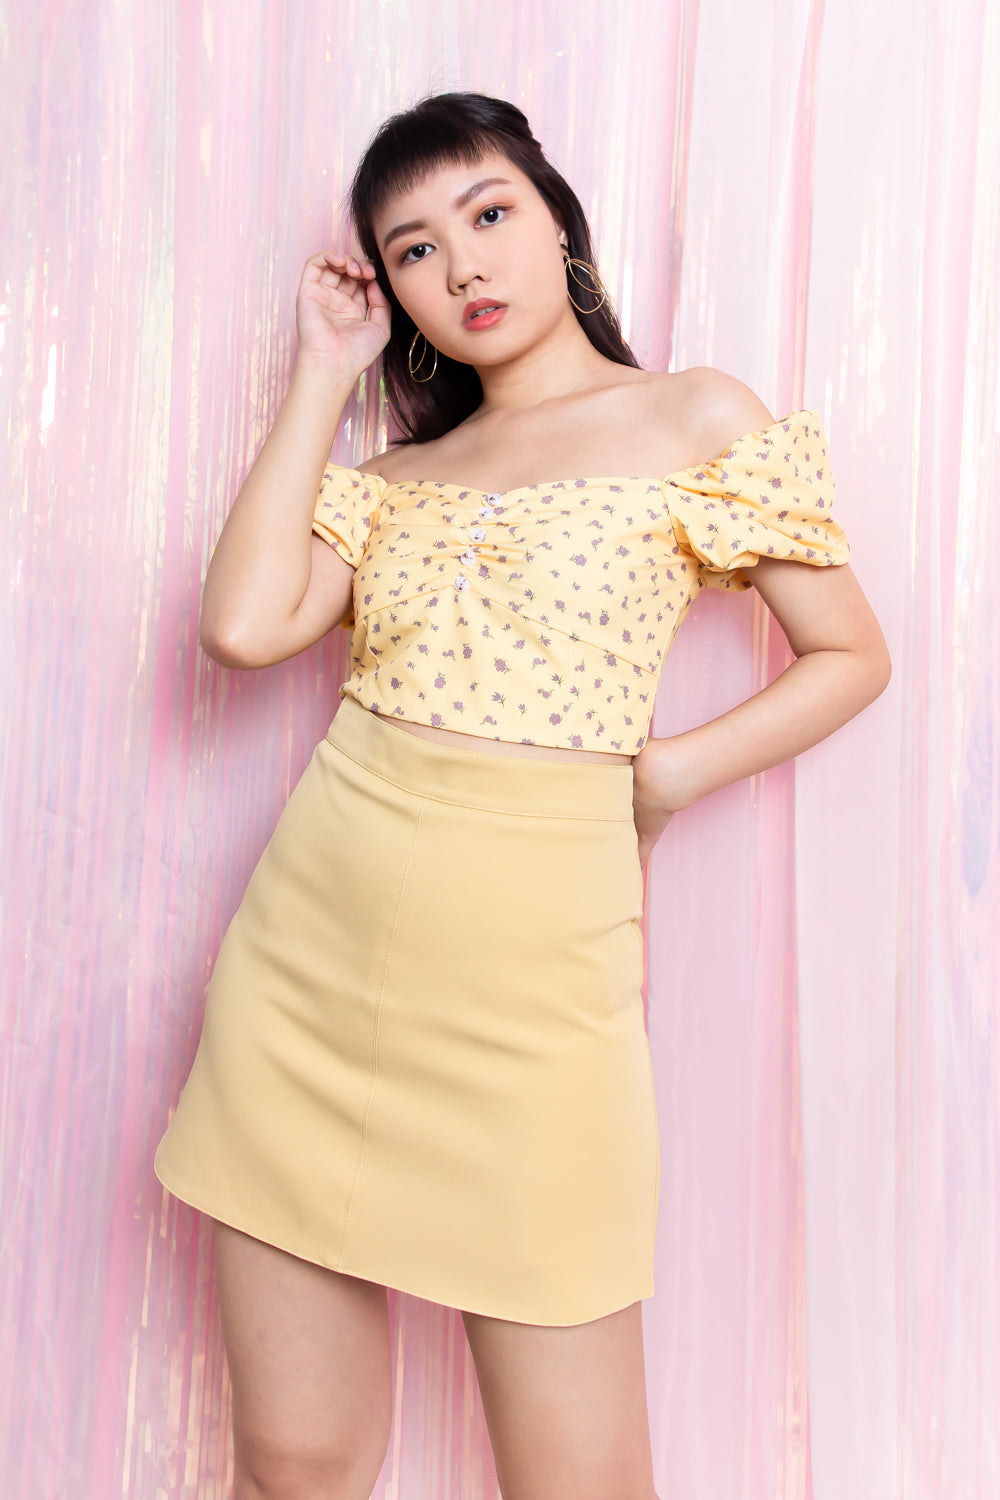 Isabelle Floral Puffed Sleeve Top in Yellow - Three One Duo